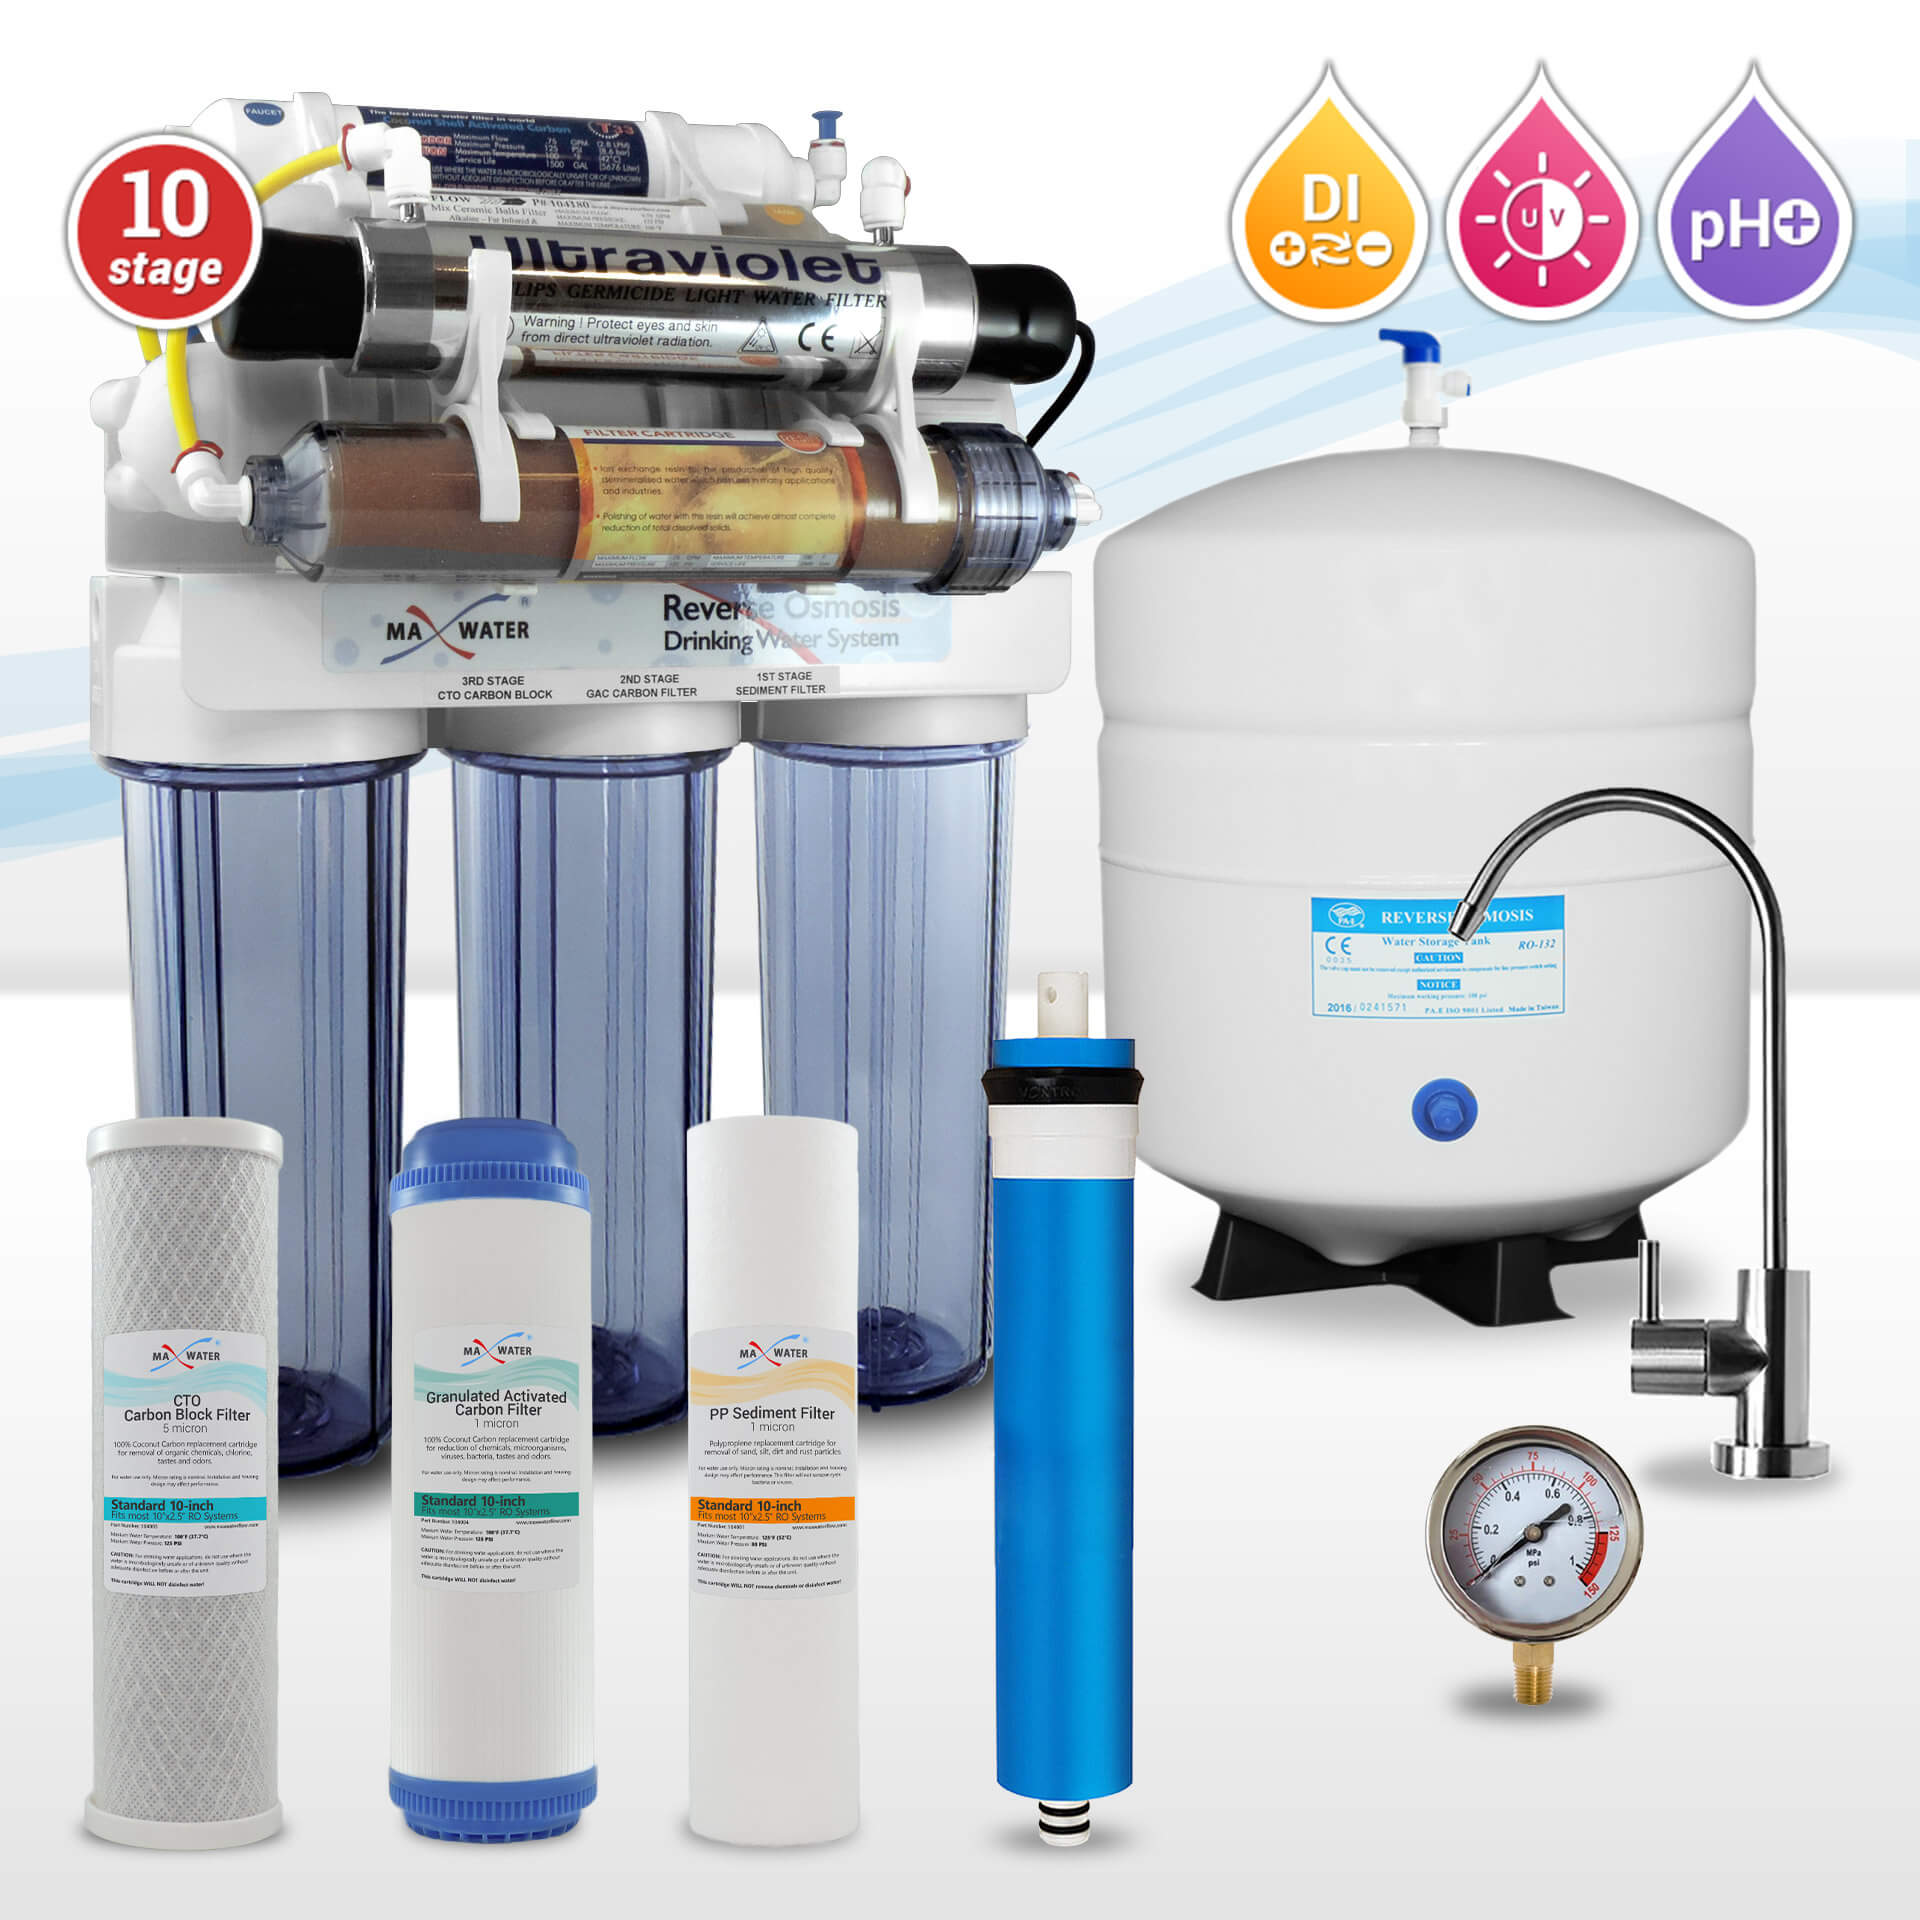 10 stage Alkaline Reverse Osmosis System with Ultraviolet Sterilizer